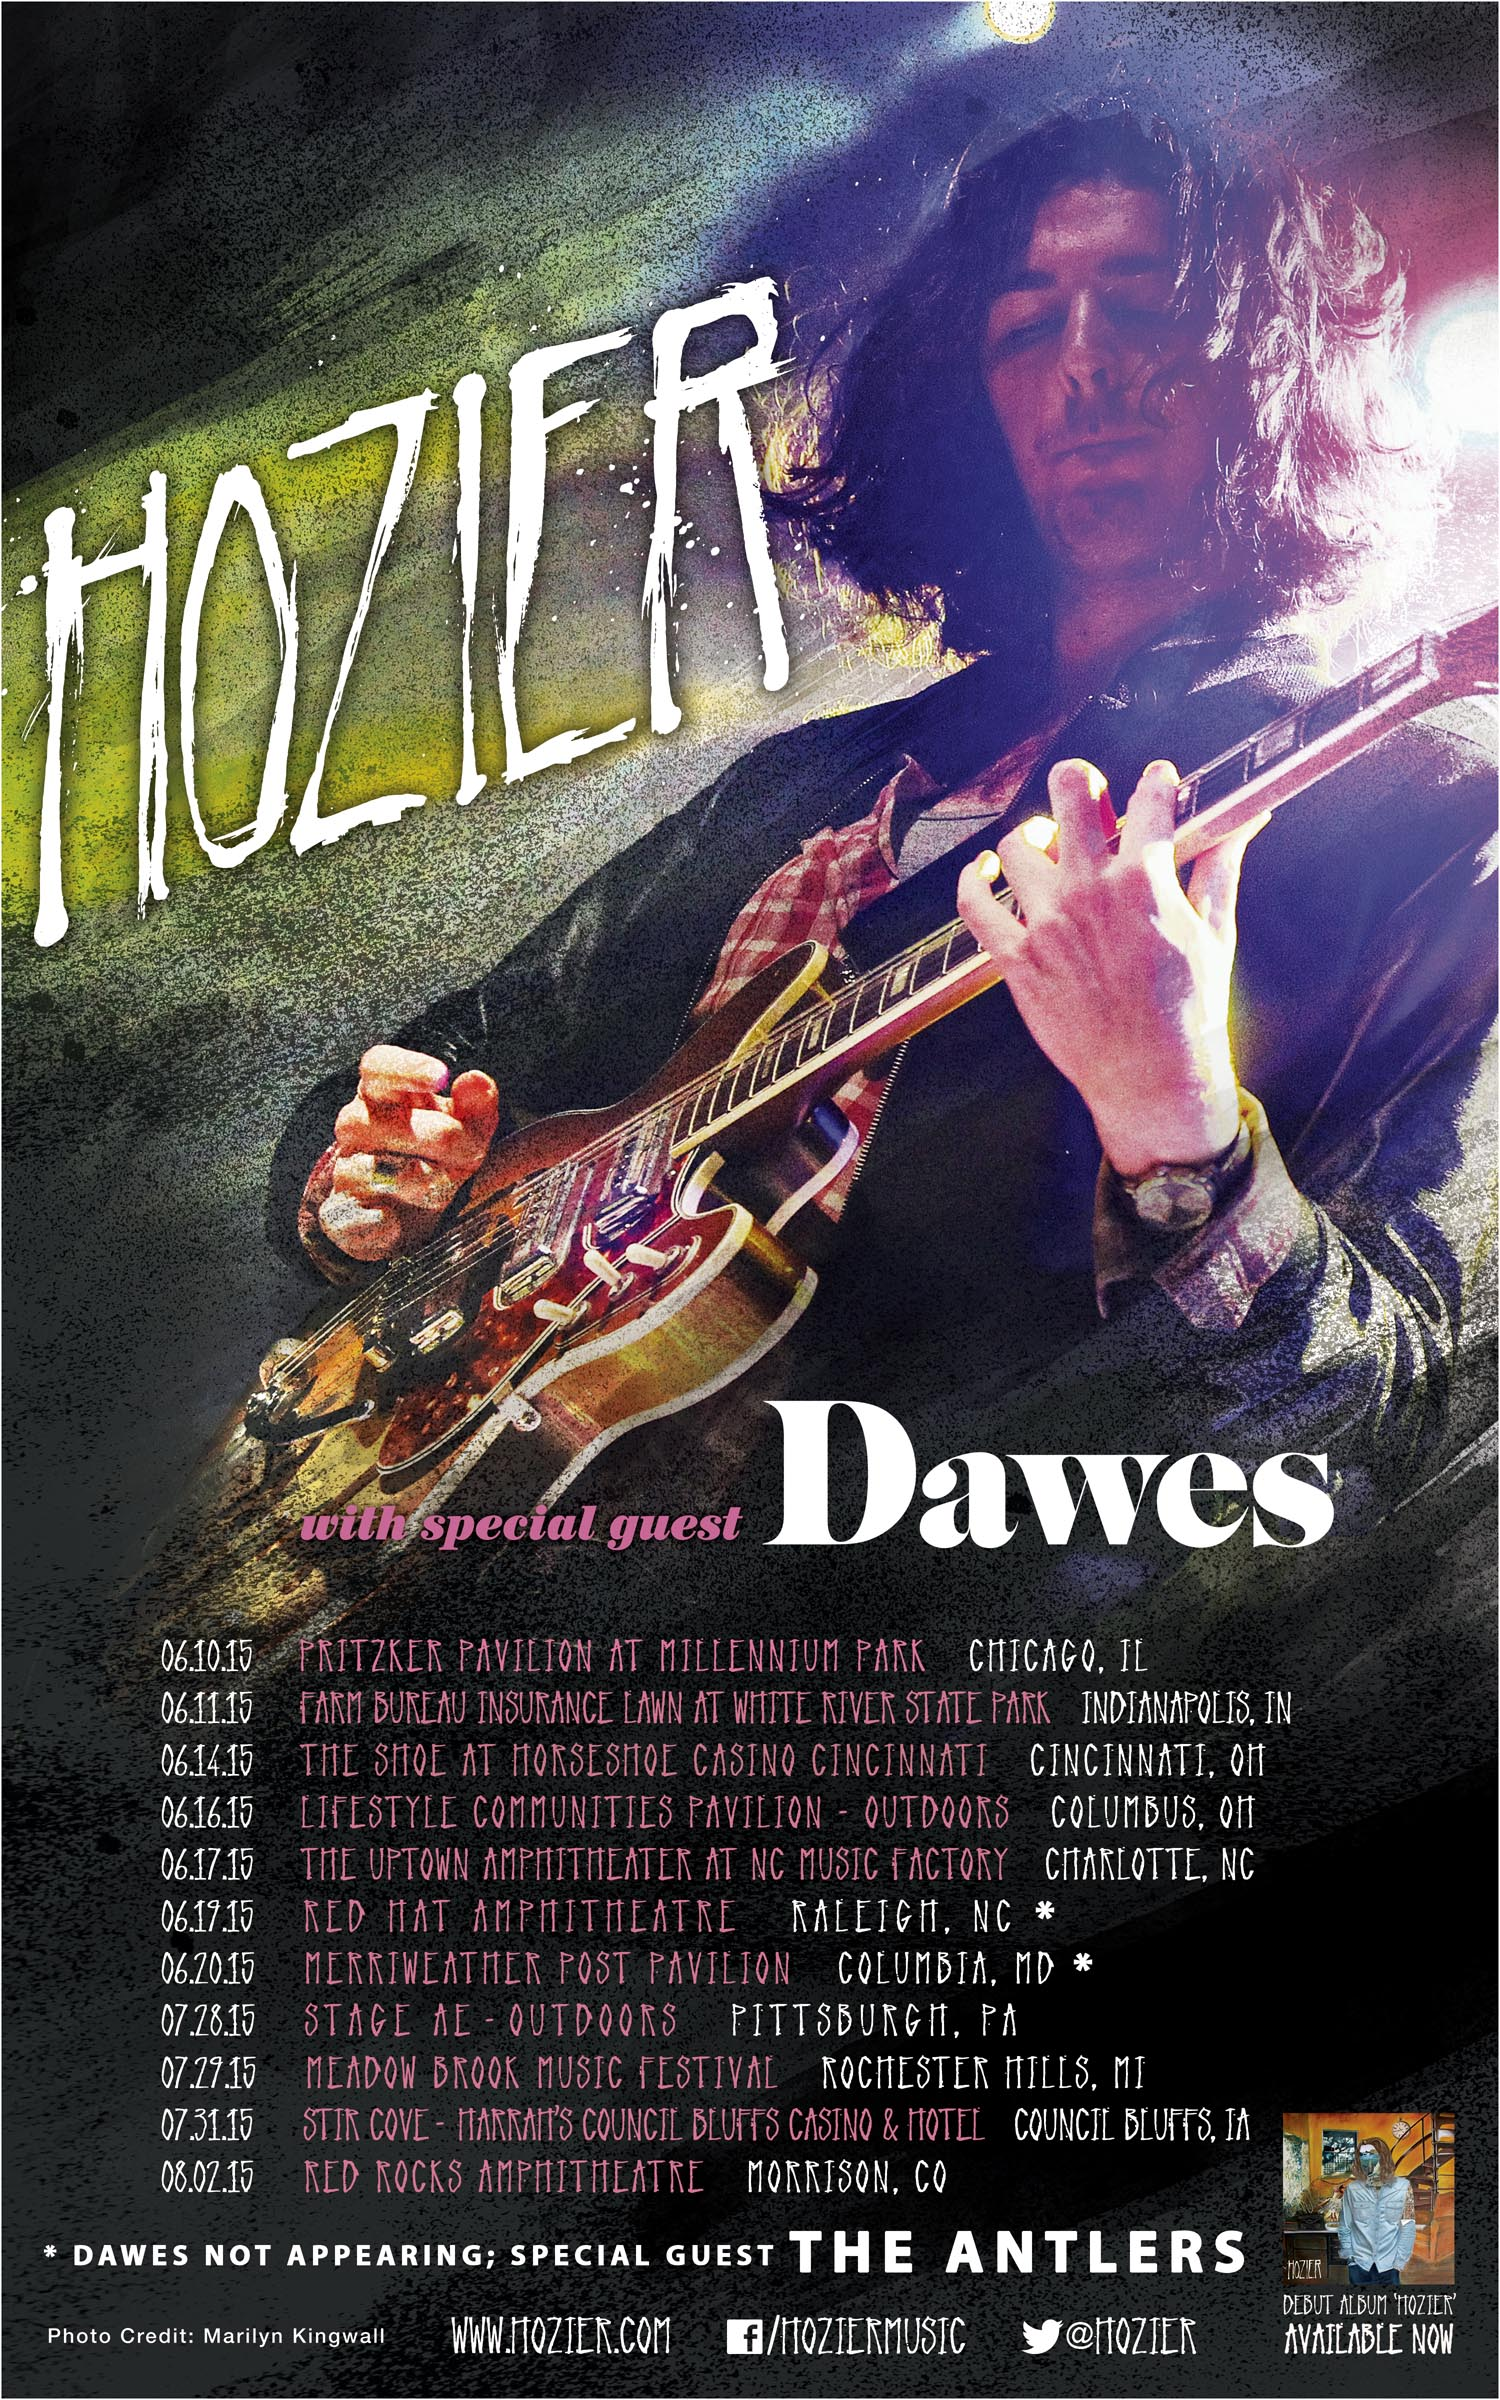 ... 751744678212202_7715182069520827015_n-Hozier Confirms 2015 Tour Dates